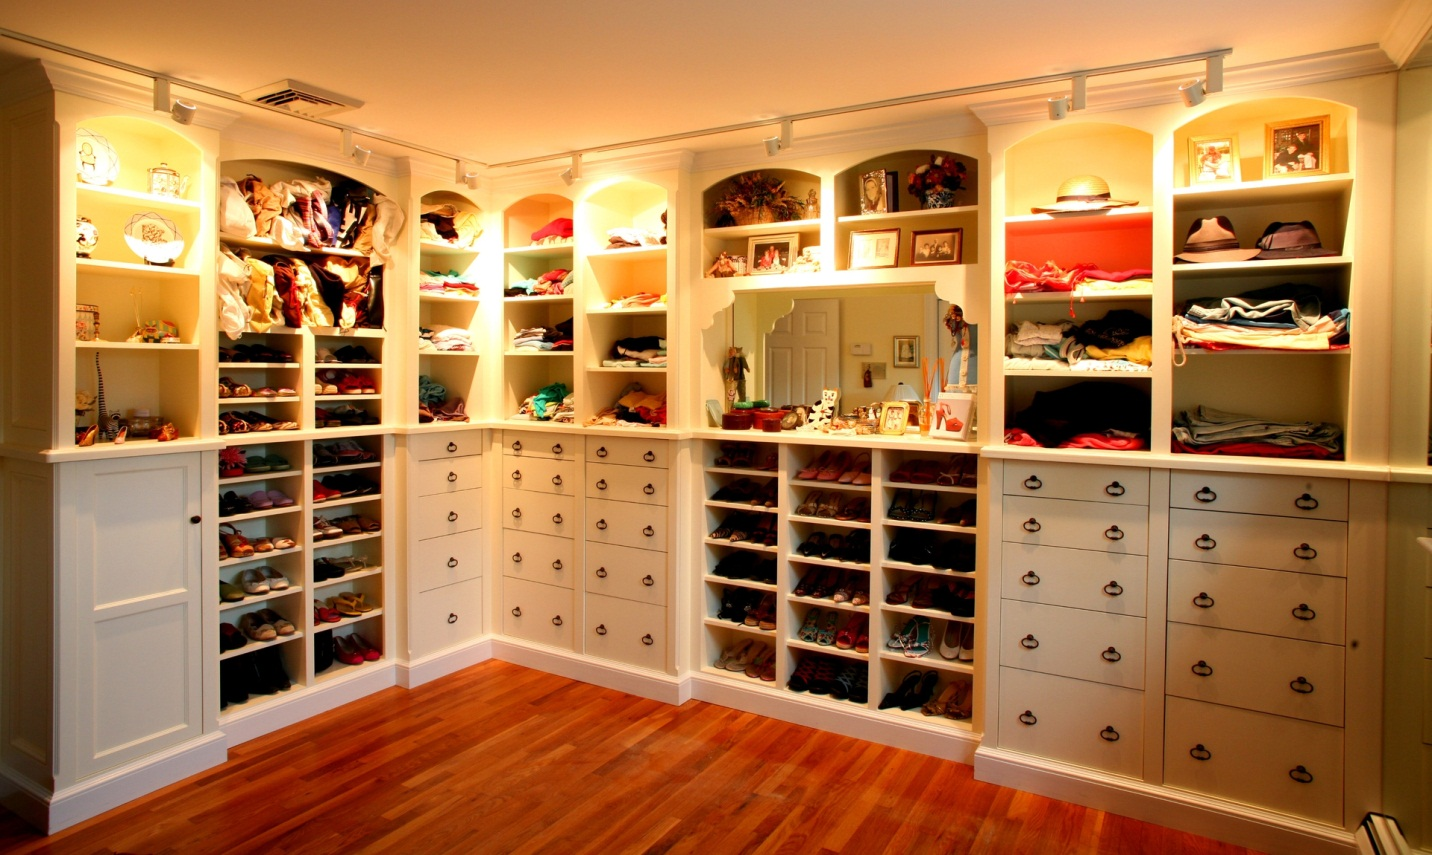 Designingluxury Com Unique And Stylish Closets To Suit Interiors Inside Ideas Interiors design about Everything [magnanprojects.com]